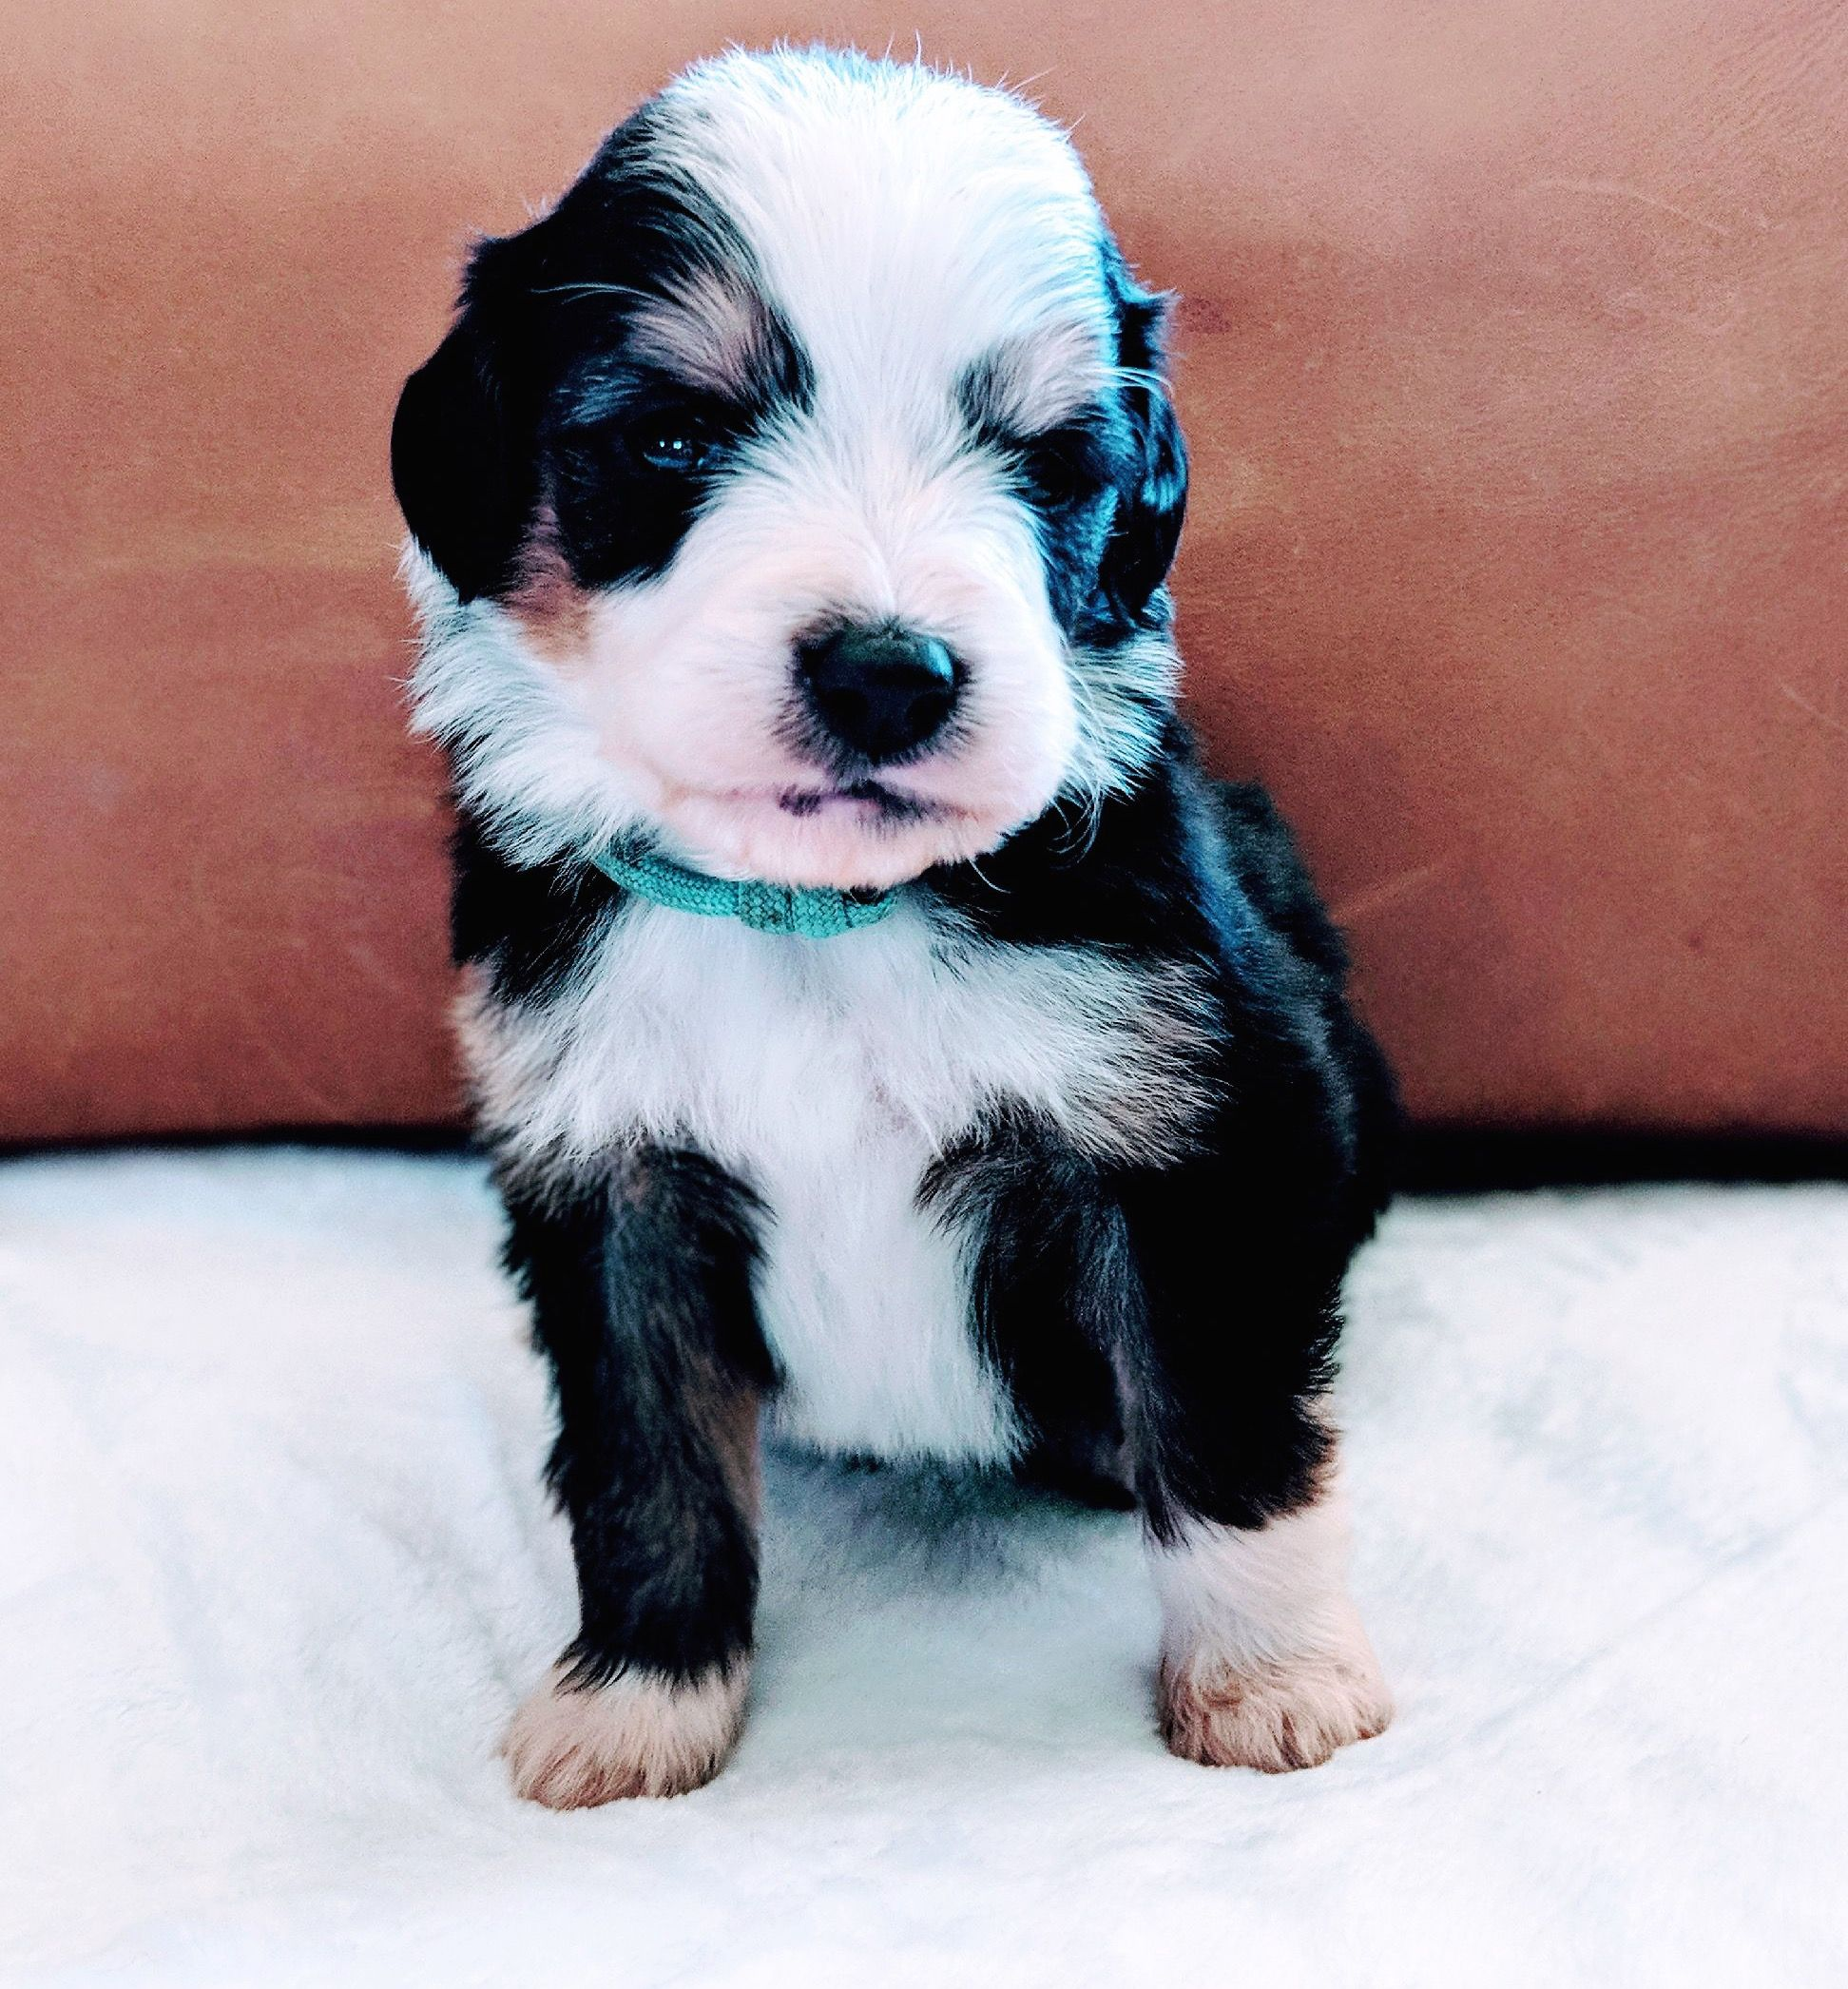 Bernedoodle Puppies For Sale Bernedoodle Puppy Bernese Mountain Dog Poodle Puppies